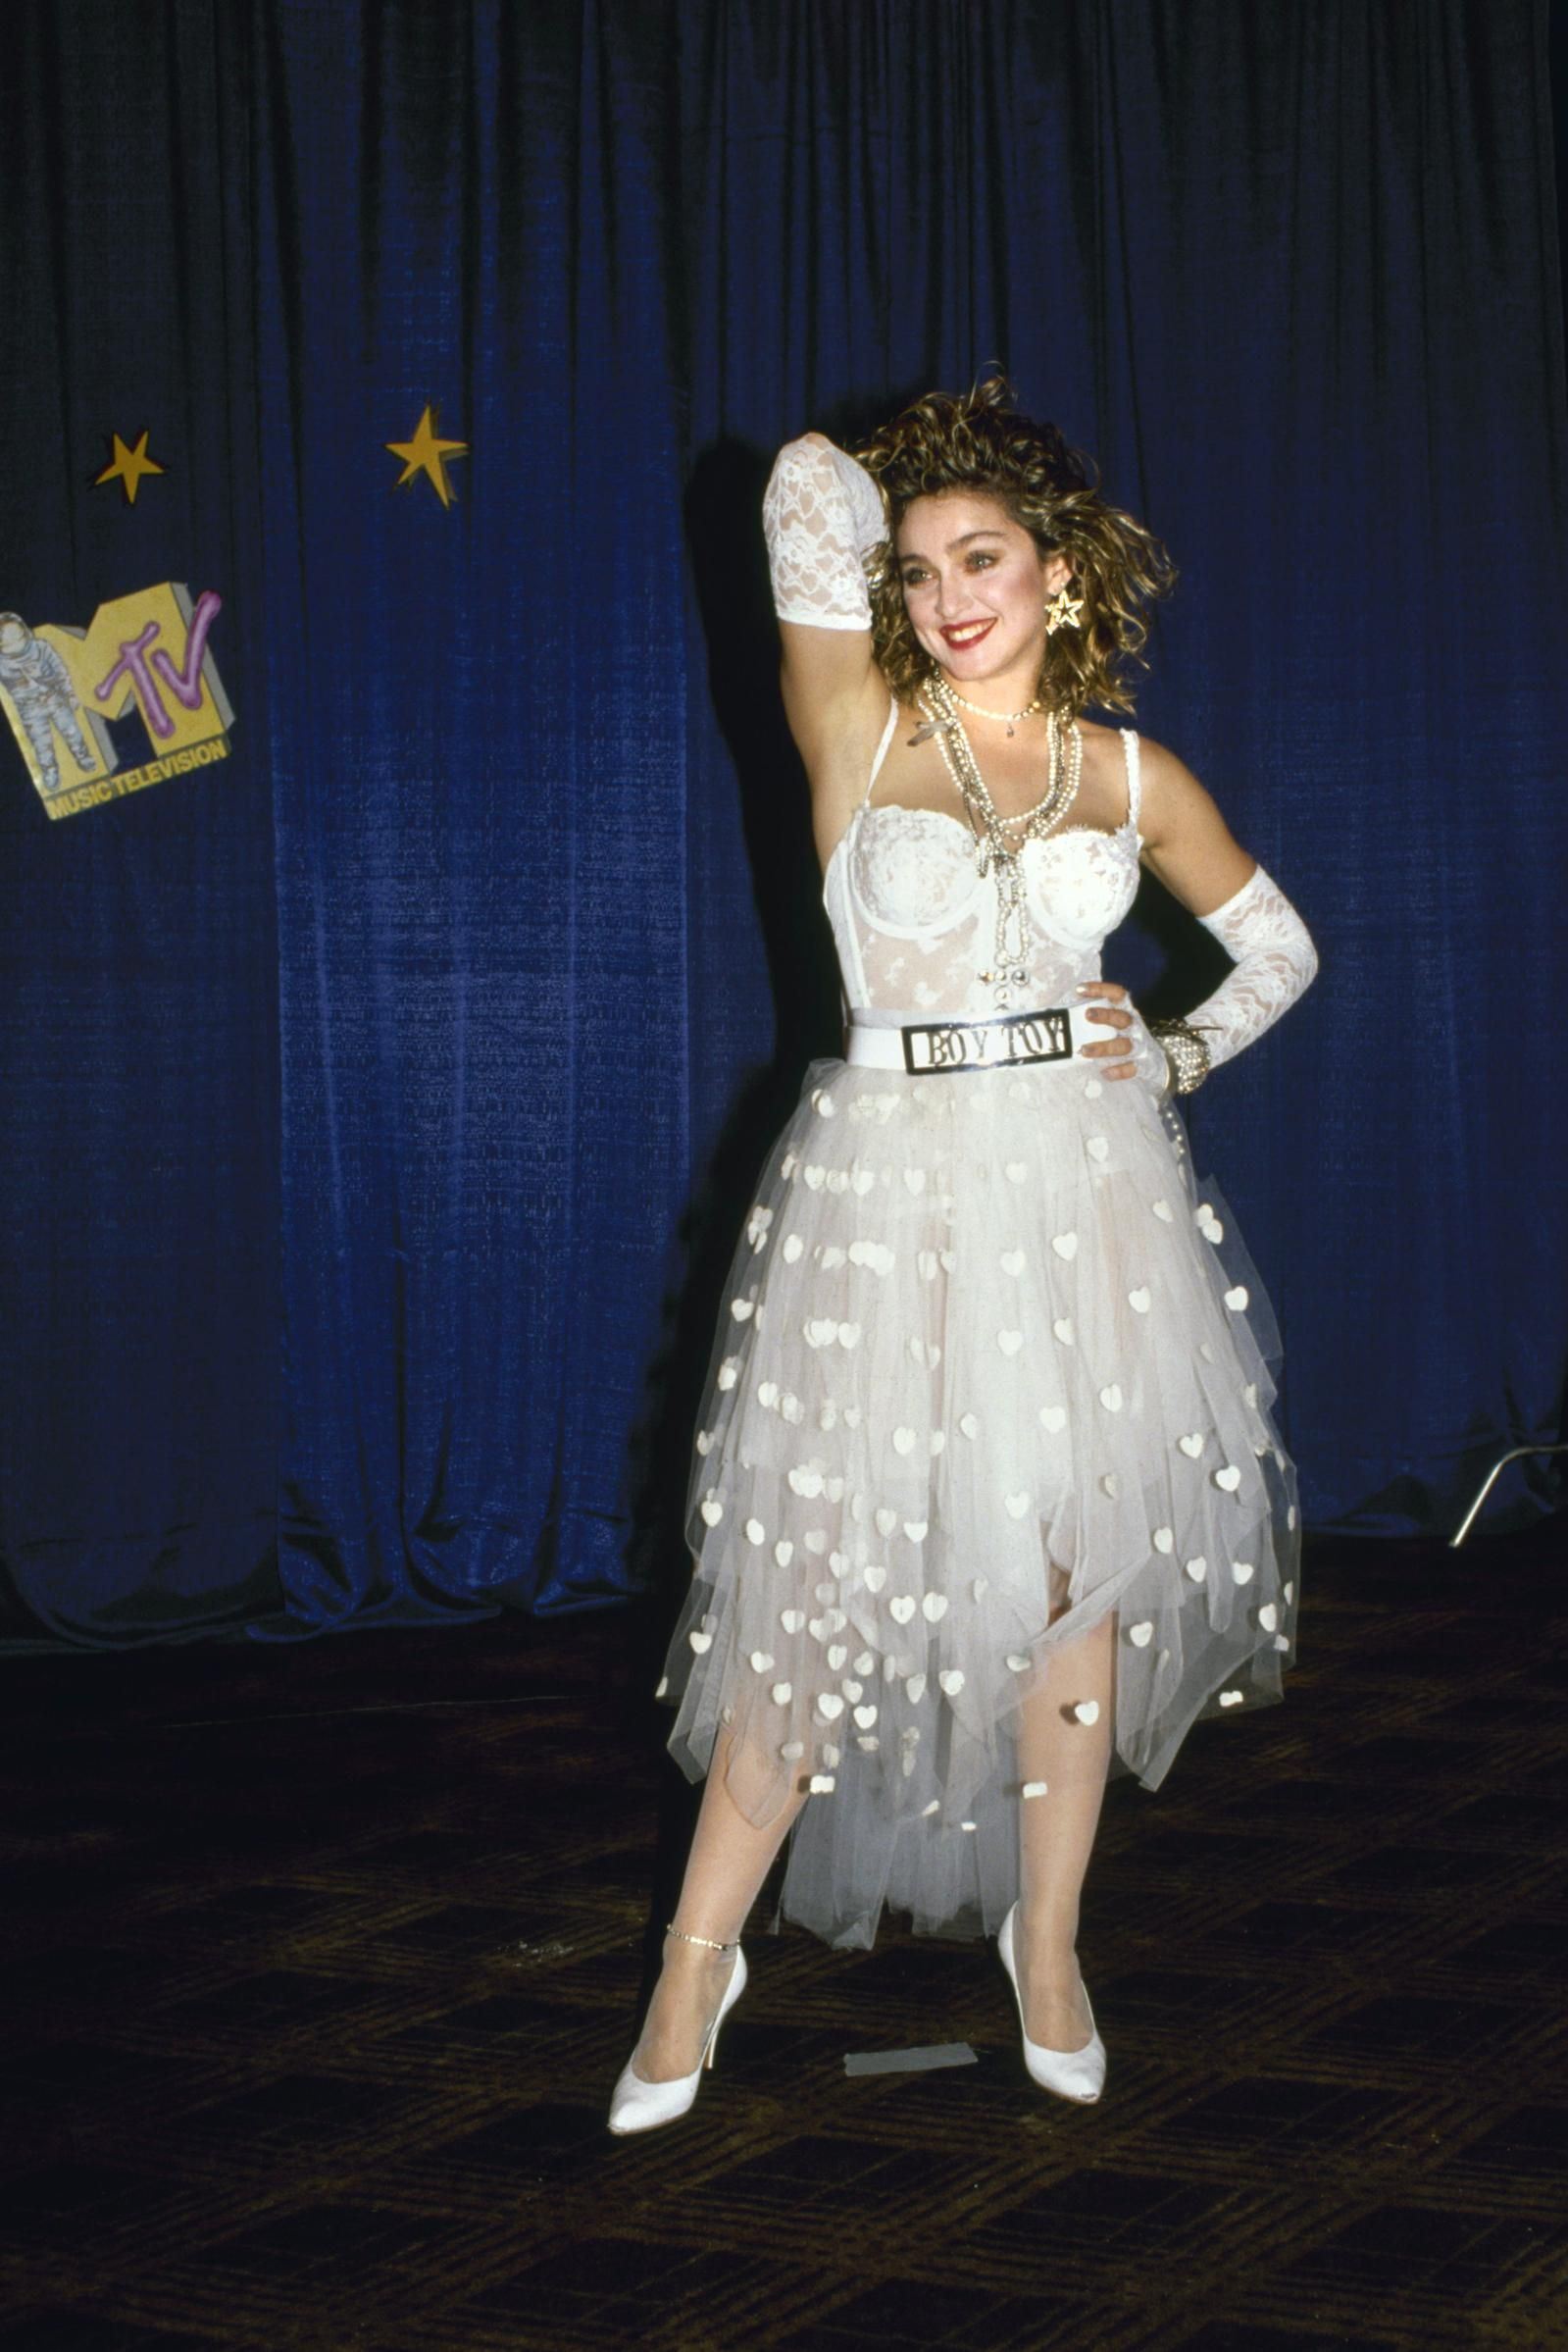 bc2c24717b9 Madonna at the 1984 VMAs. Idolized her. Could NOT tell me I wasn t black  Madonna!